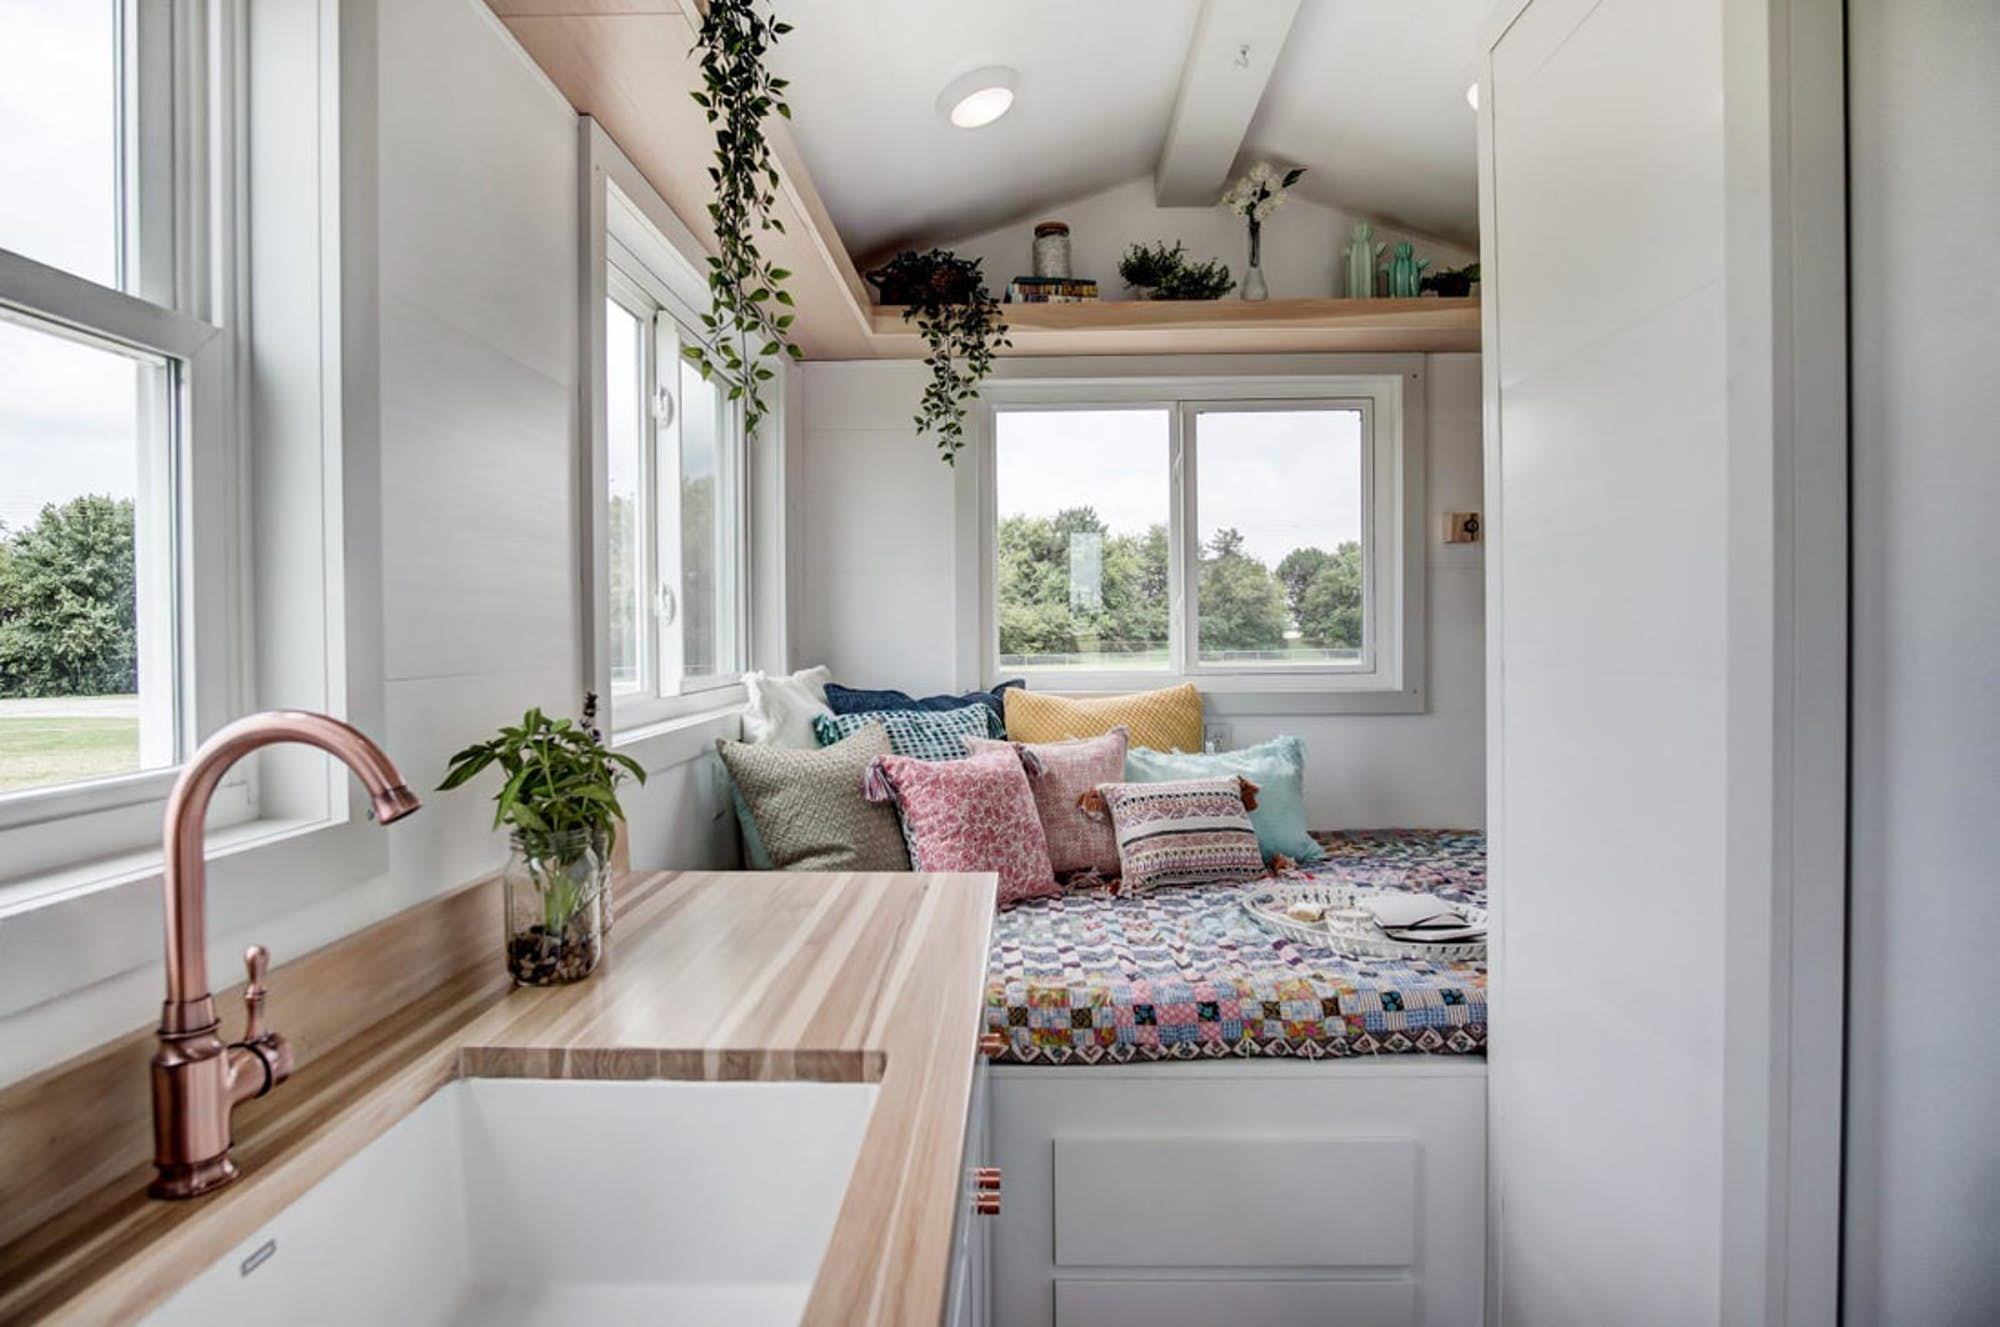 Modern Tiny House Interior: 5 Impressive Tiny Houses You Can Order Right Now